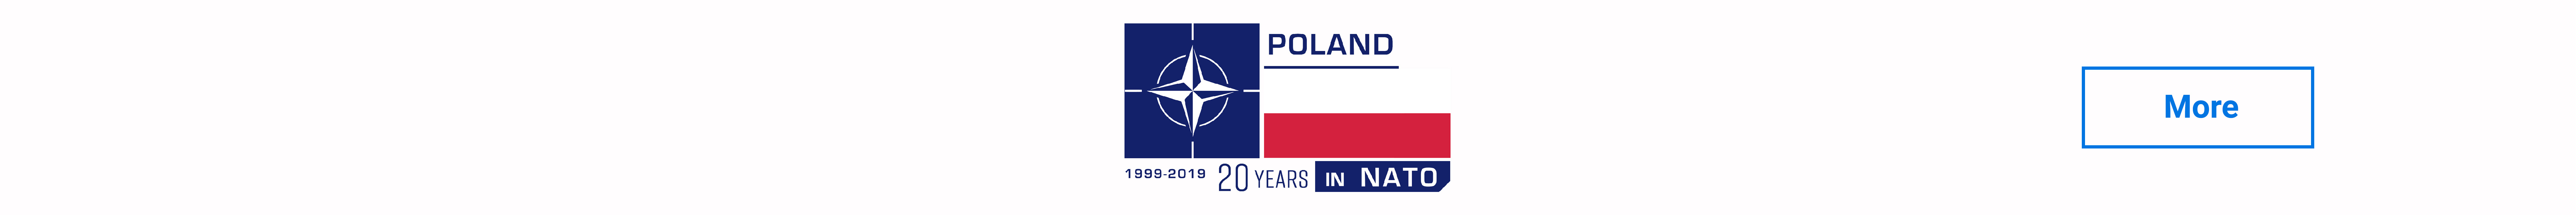 Poland 20 years in NATO